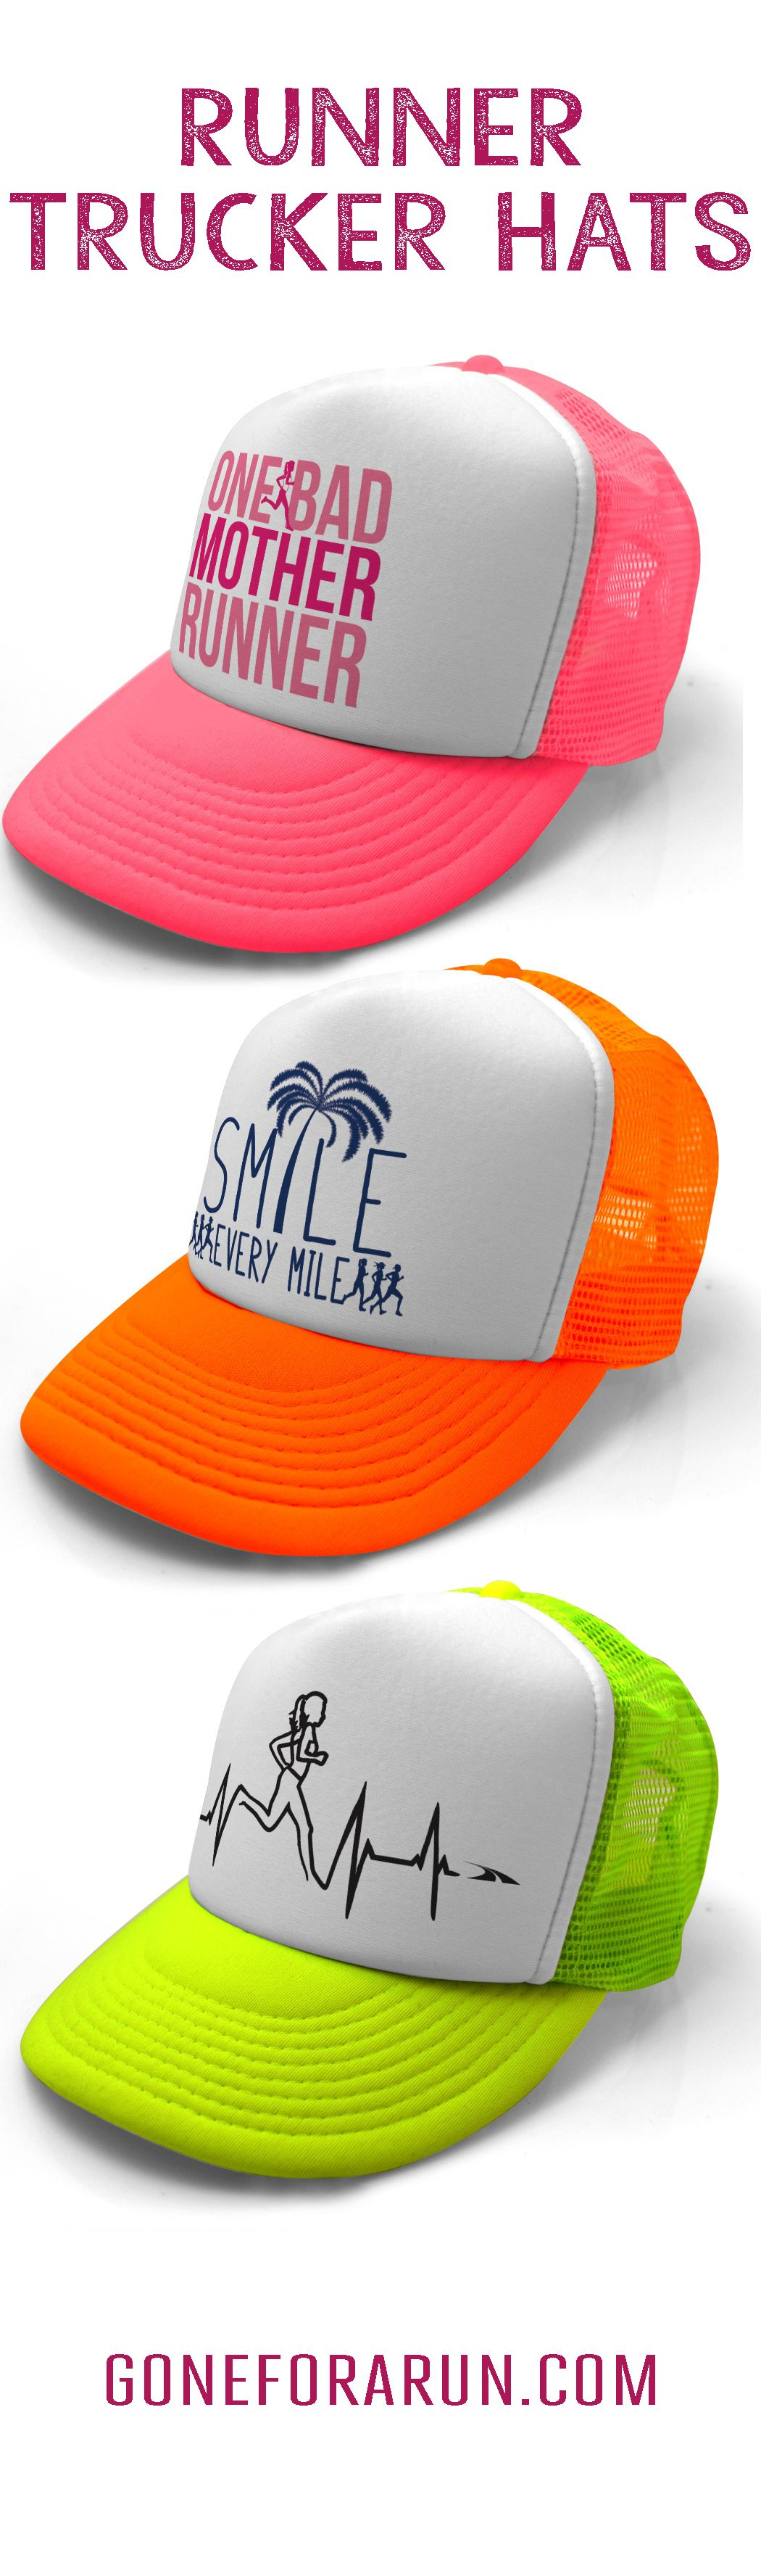 Our running trucker hats are awesome lots of great